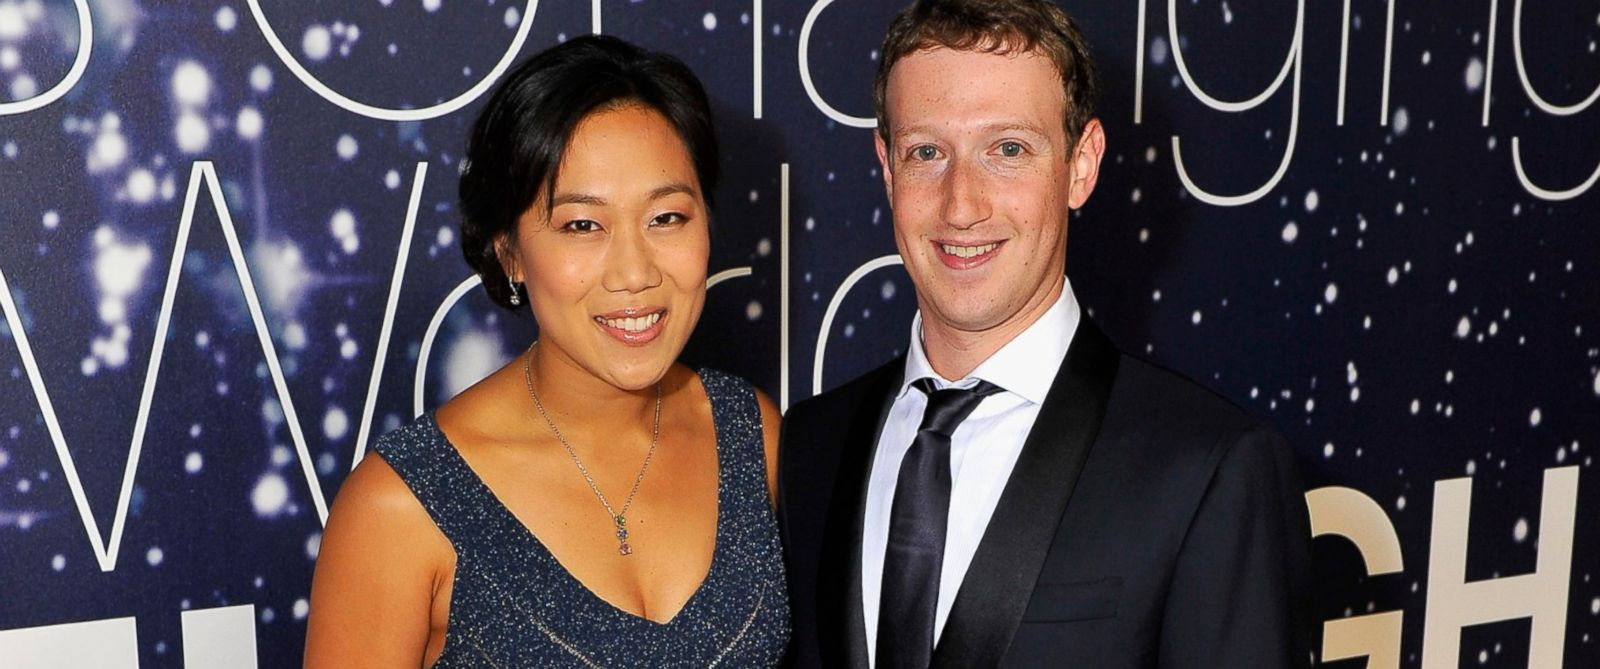 Good Morning America Zuckerberg Give Away : How the zuckerbergs can give away their facebook fortune